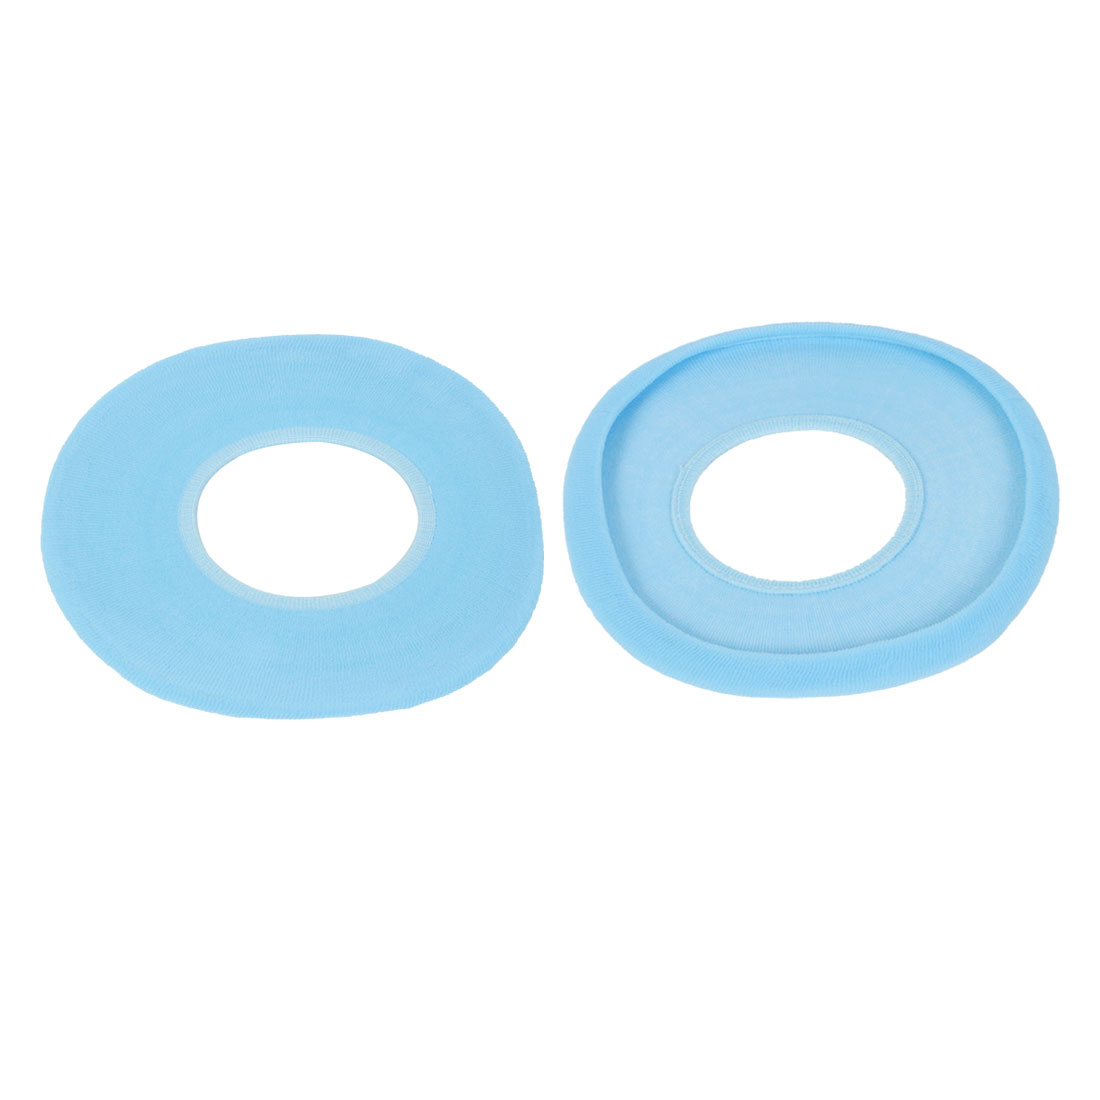 2Pcs Soft Washable Bathroom Warmer Toilet Seat Cover Lid Top Pads Cyan